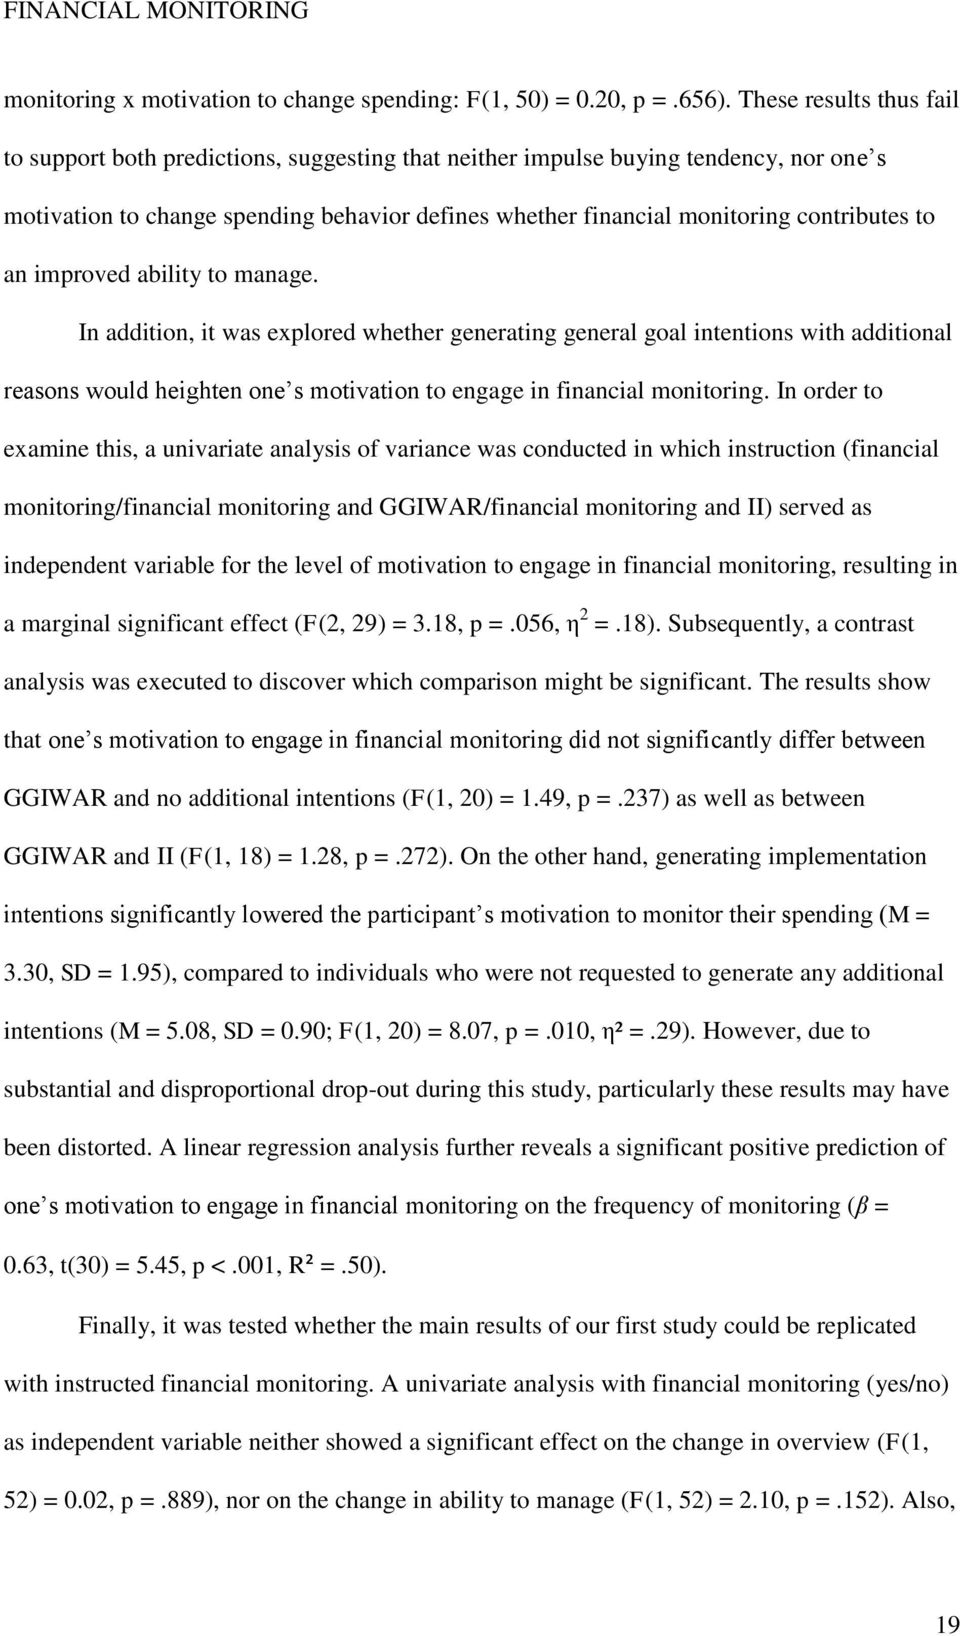 to an improved ability to manage. In addition, it was explored whether generating general goal intentions with additional reasons would heighten one s motivation to engage in financial monitoring.